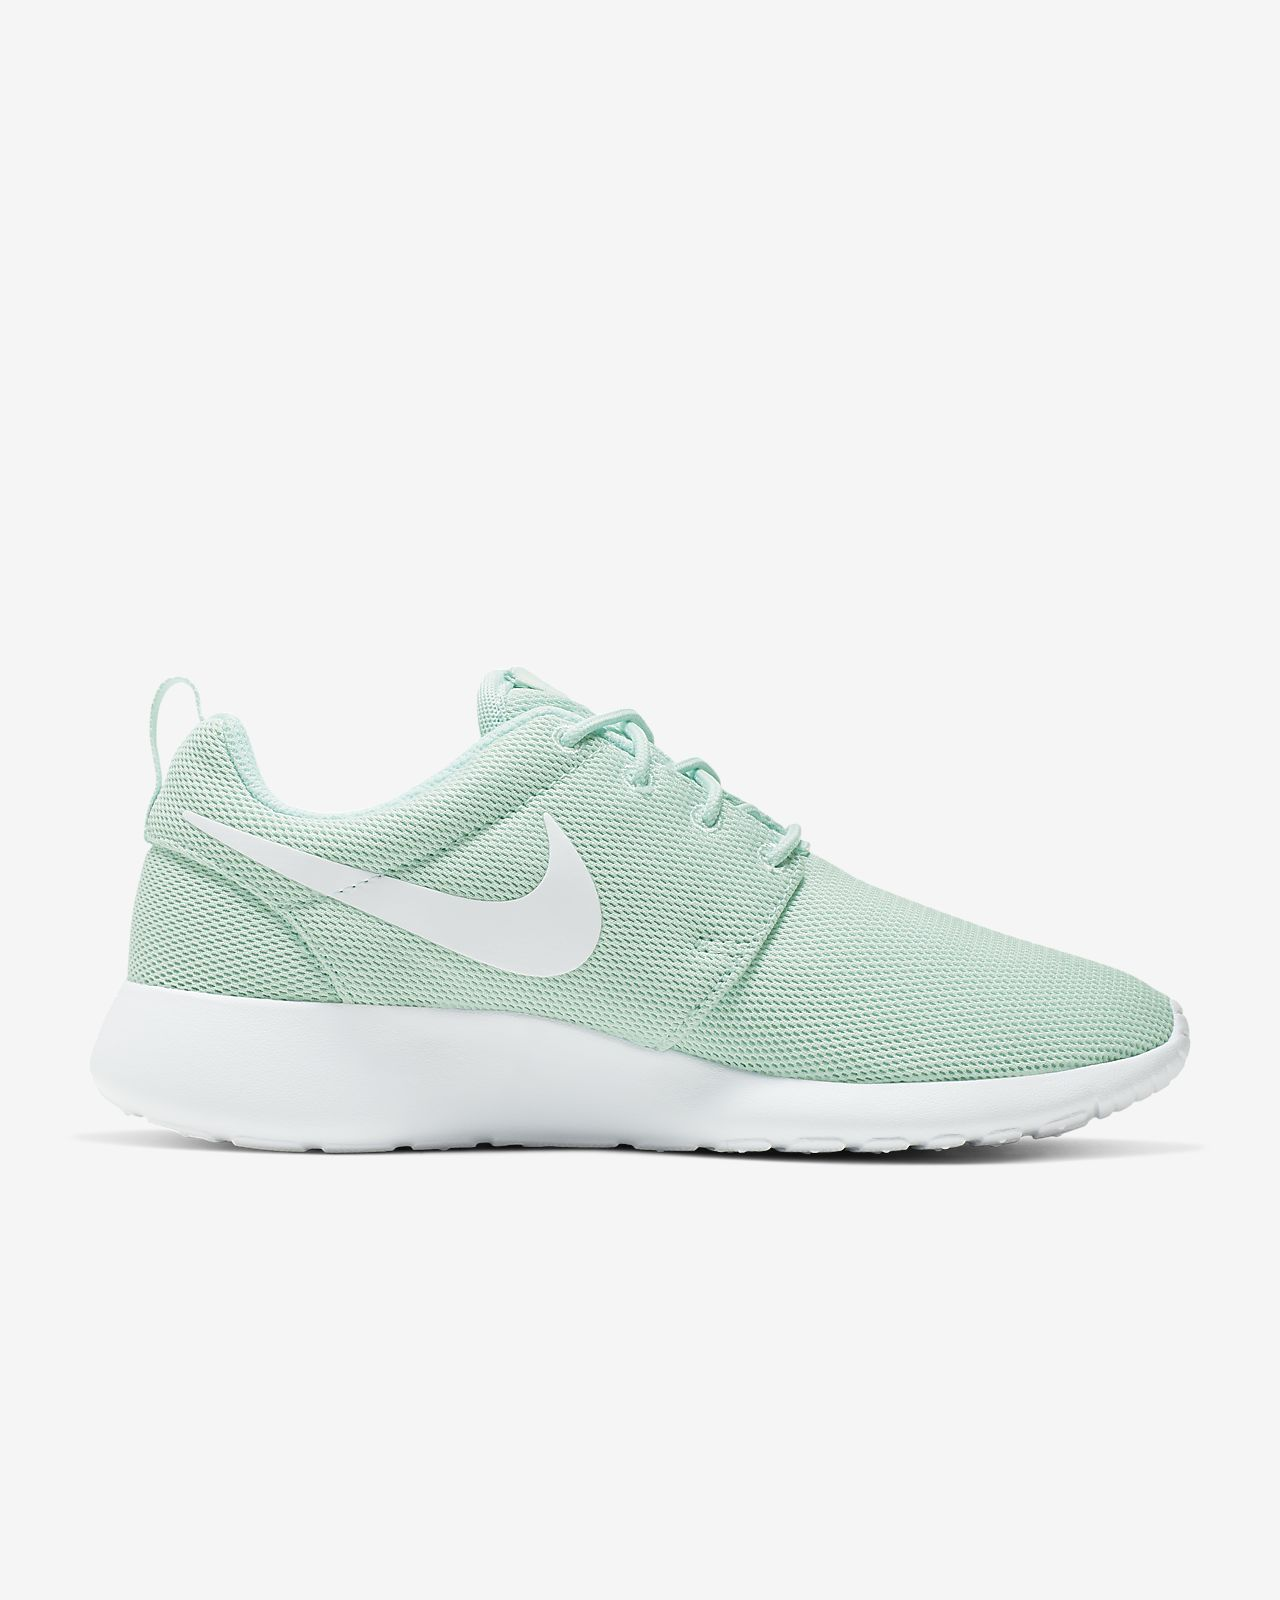 premium selection ceb88 981b4 ... Nike Roshe One Women s Shoe